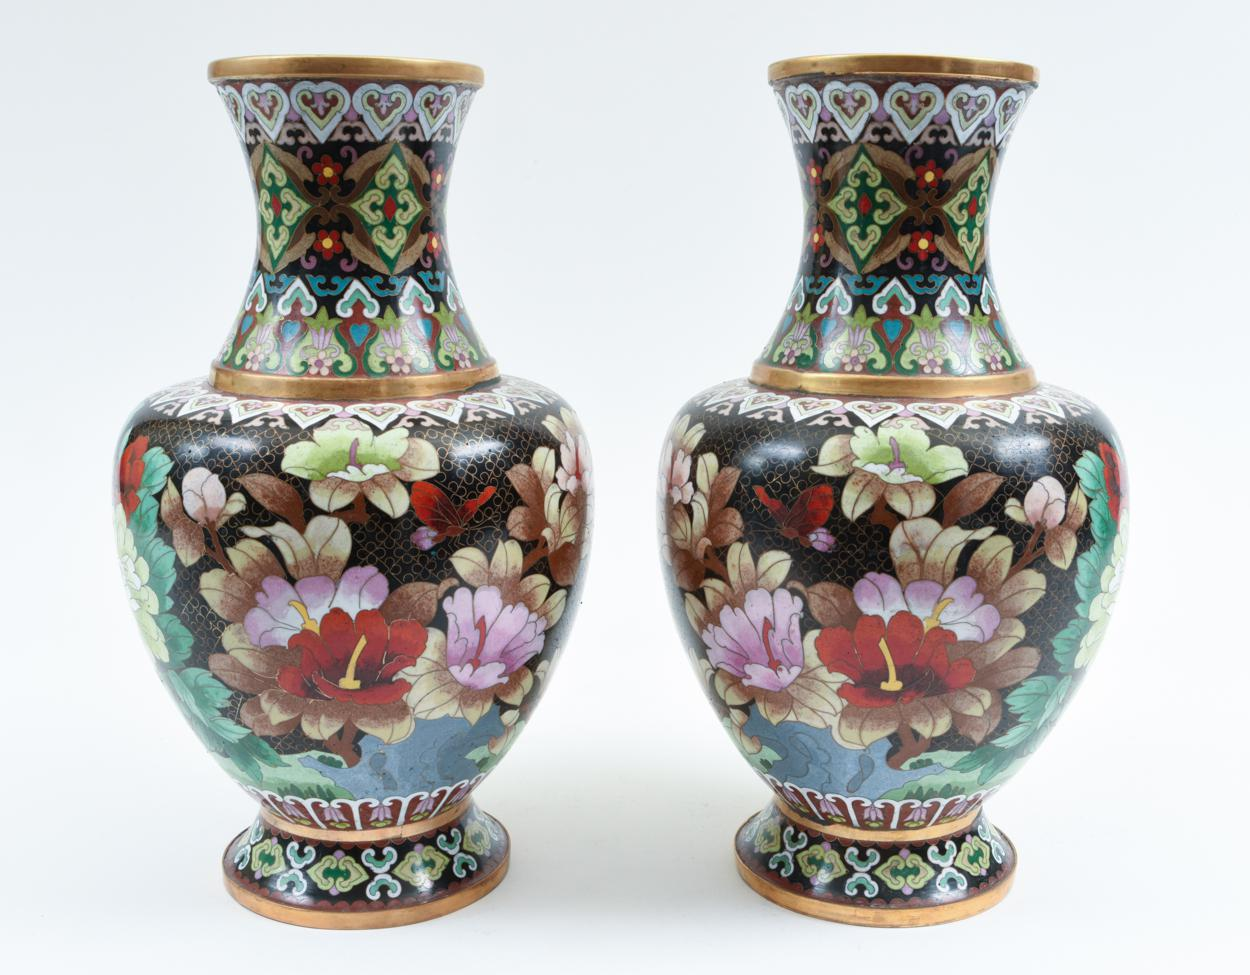 Mid 20th Century Colorful Cloisonné Decorative Vases   A Pair